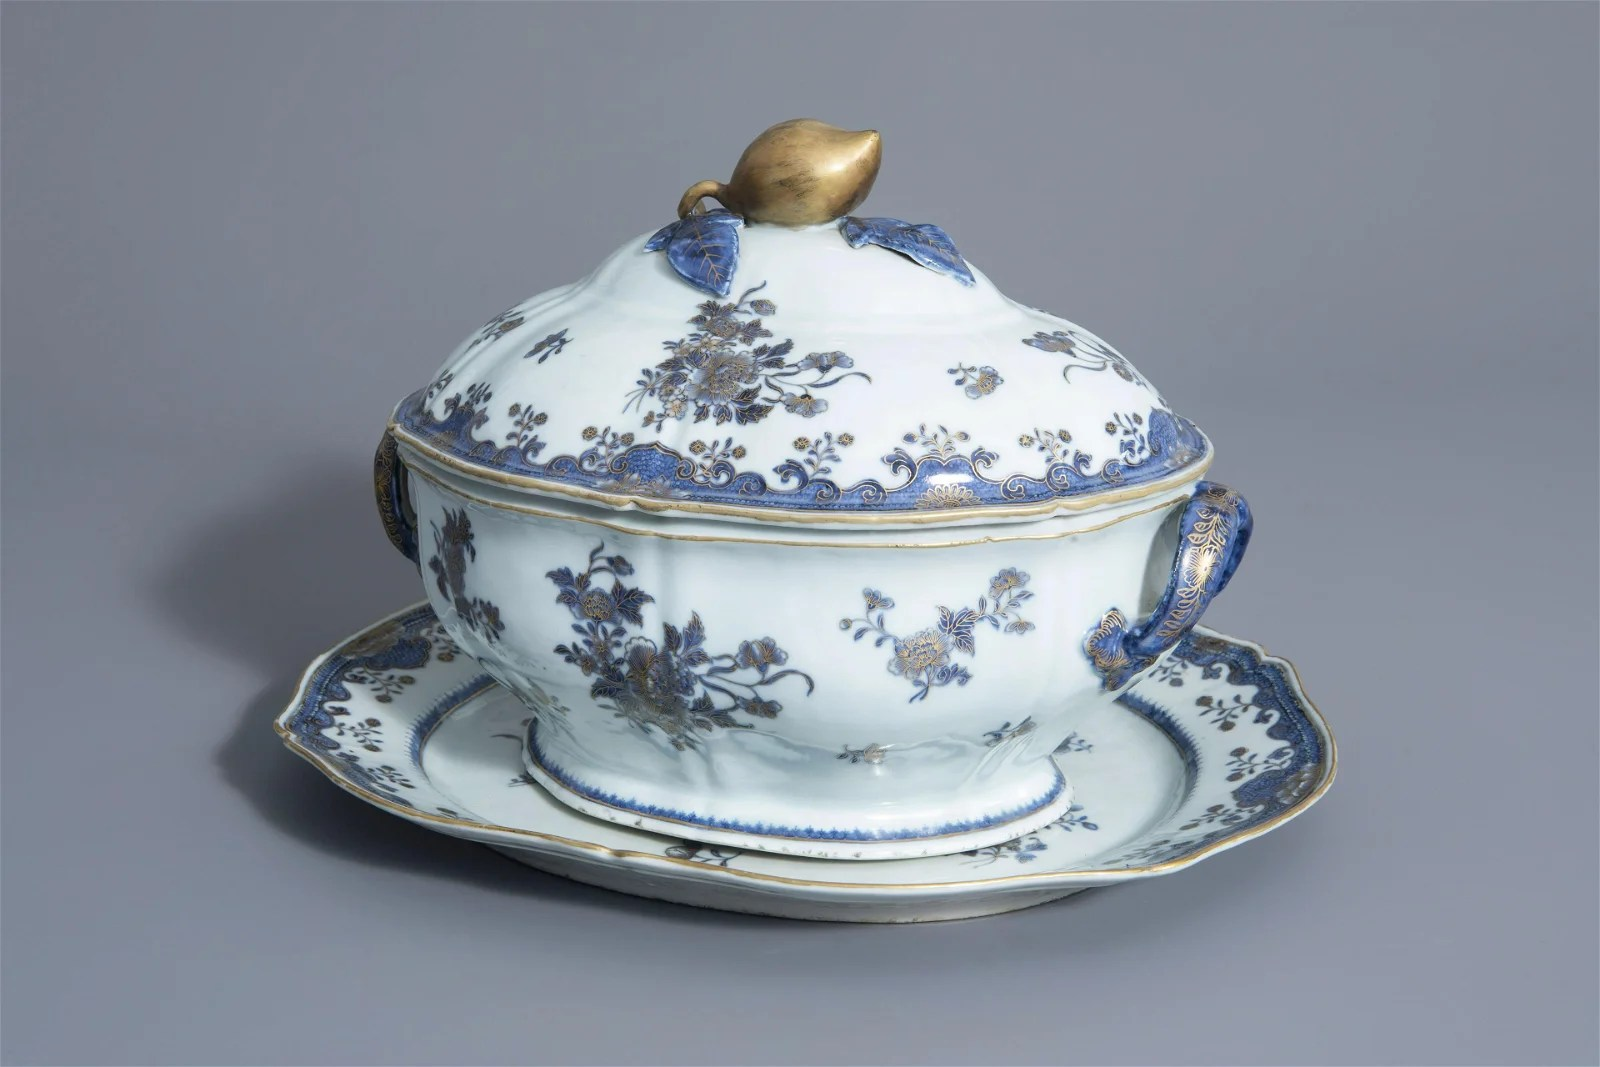 A Chinese blue, white and gilt tureen and cover on